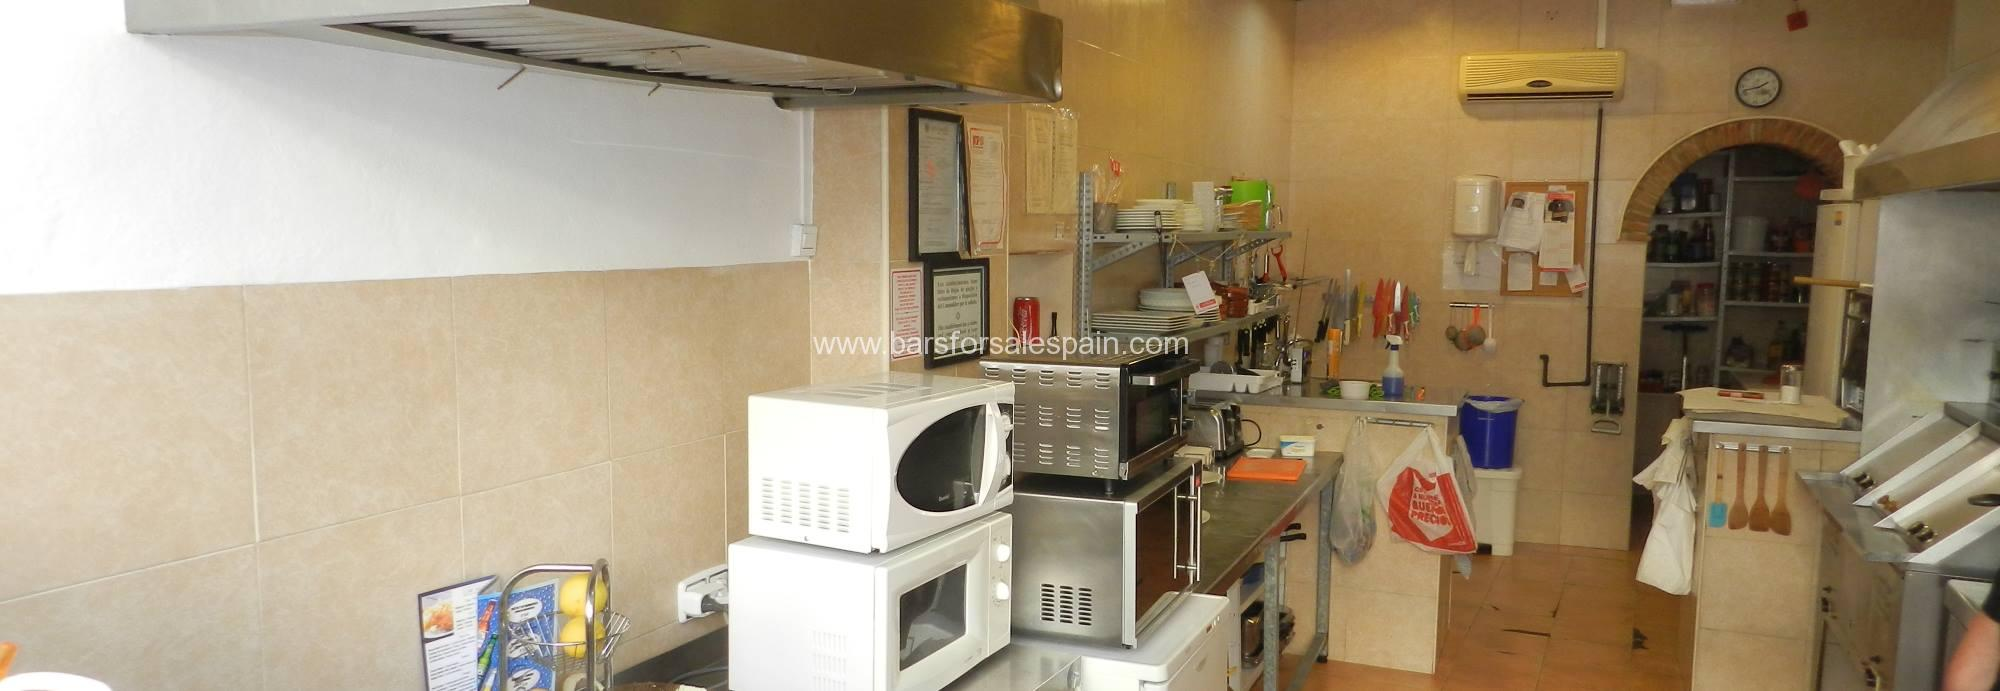 Fish & Chip Shop For Sale in Fuengirola, Malaga, Spain